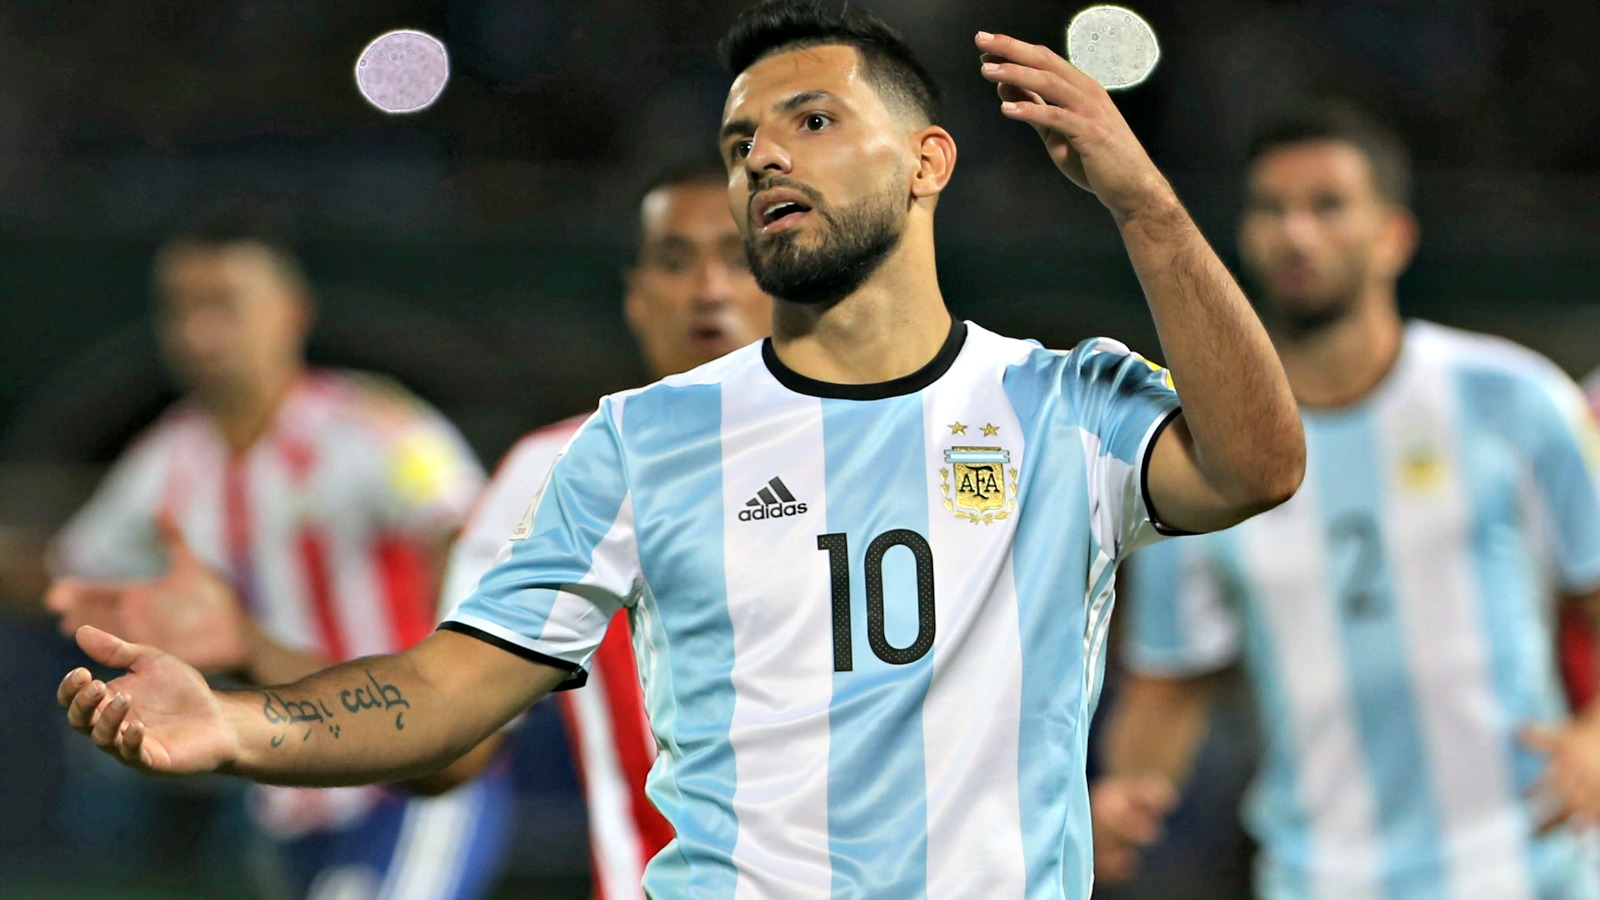 Irate commentator tells Sergio Aguero to 'for the love of God, leave' after Argentina loss